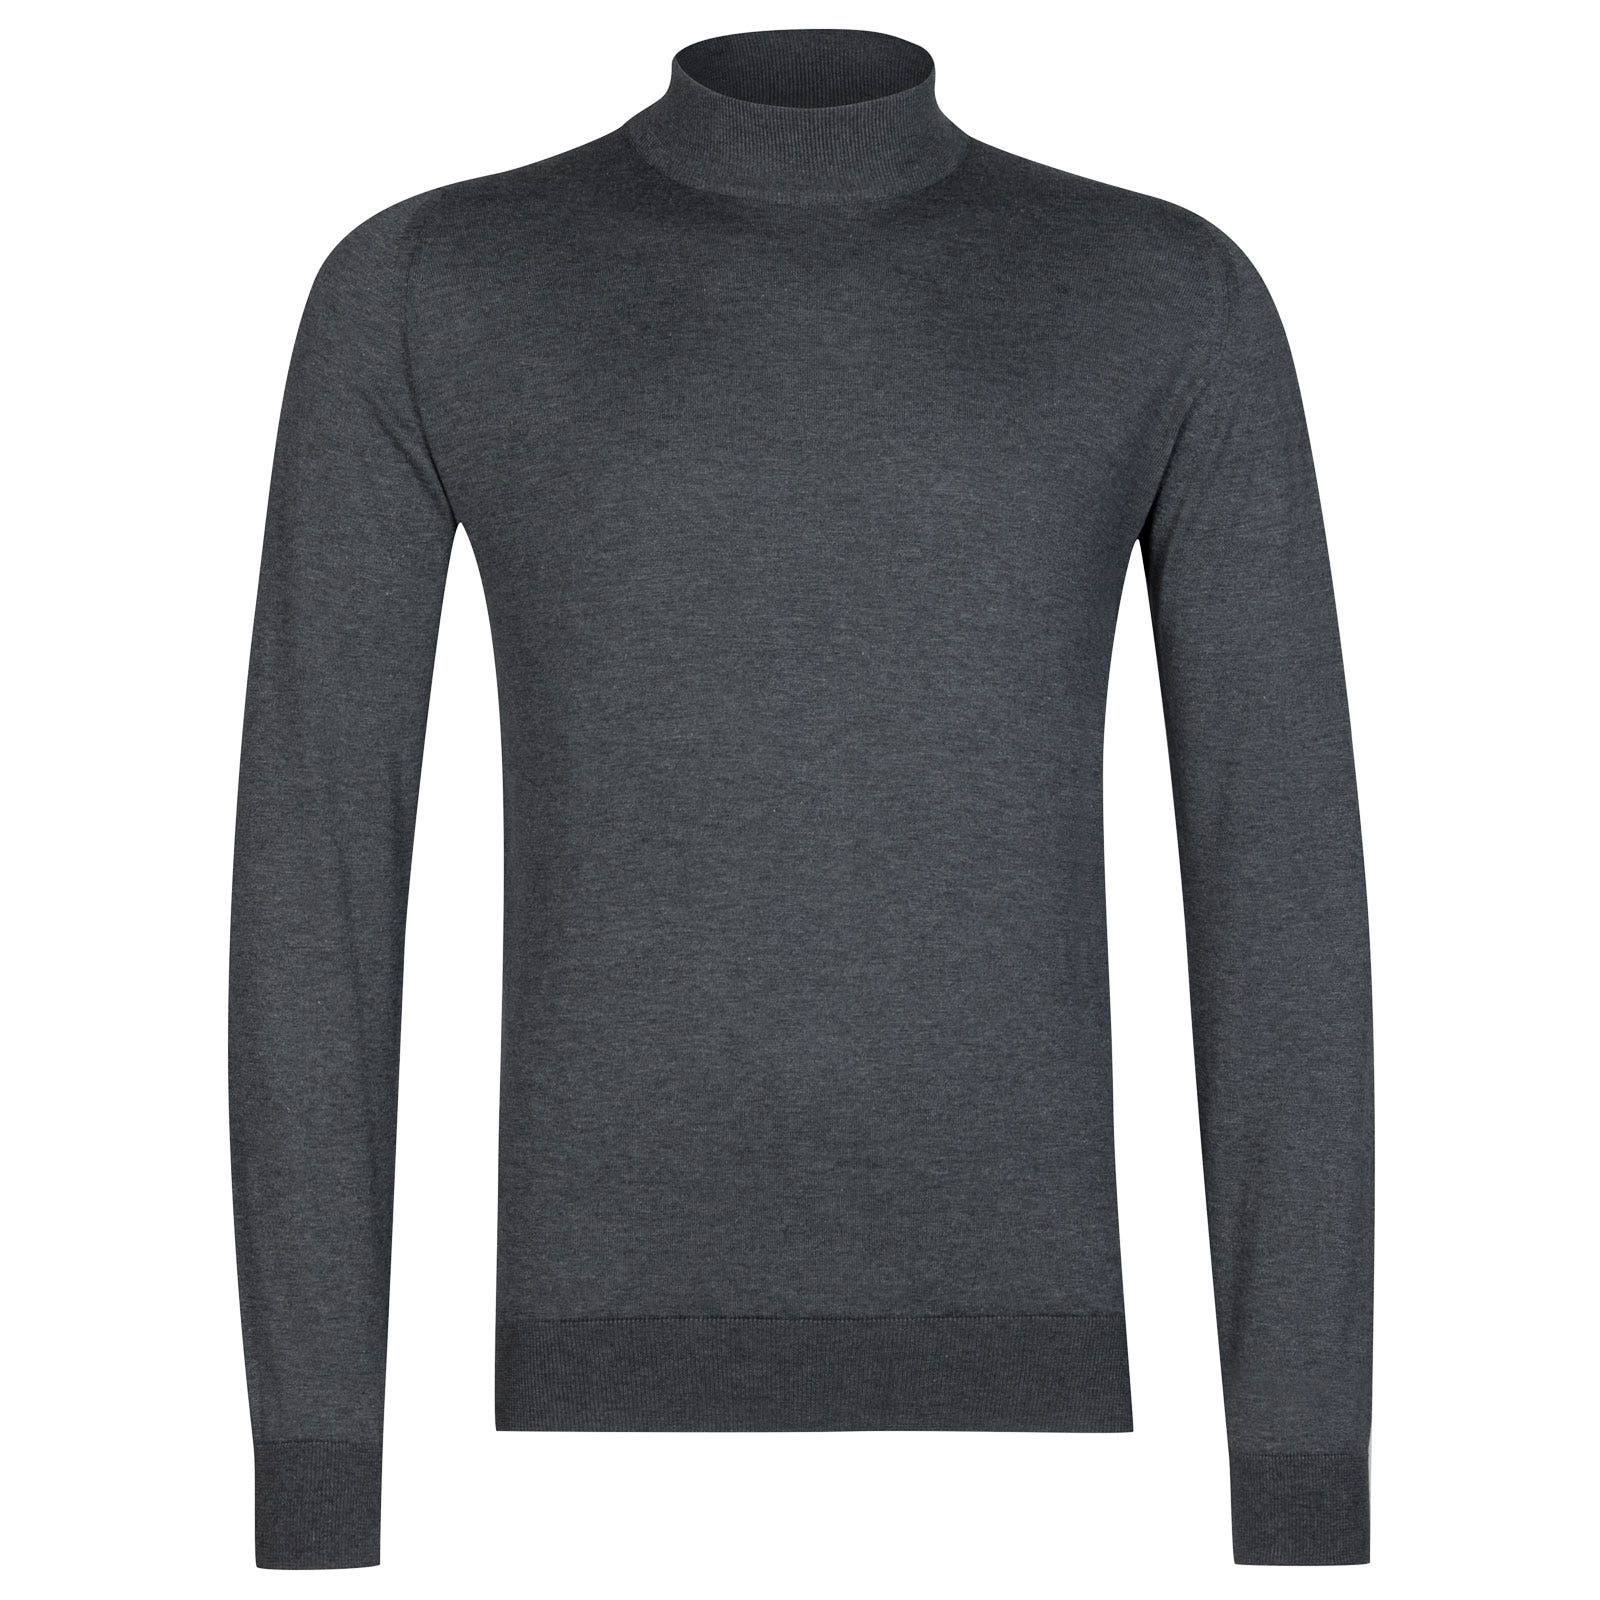 John Smedley Bradgate Sea Island Cotton Pullover in Charcoal-S